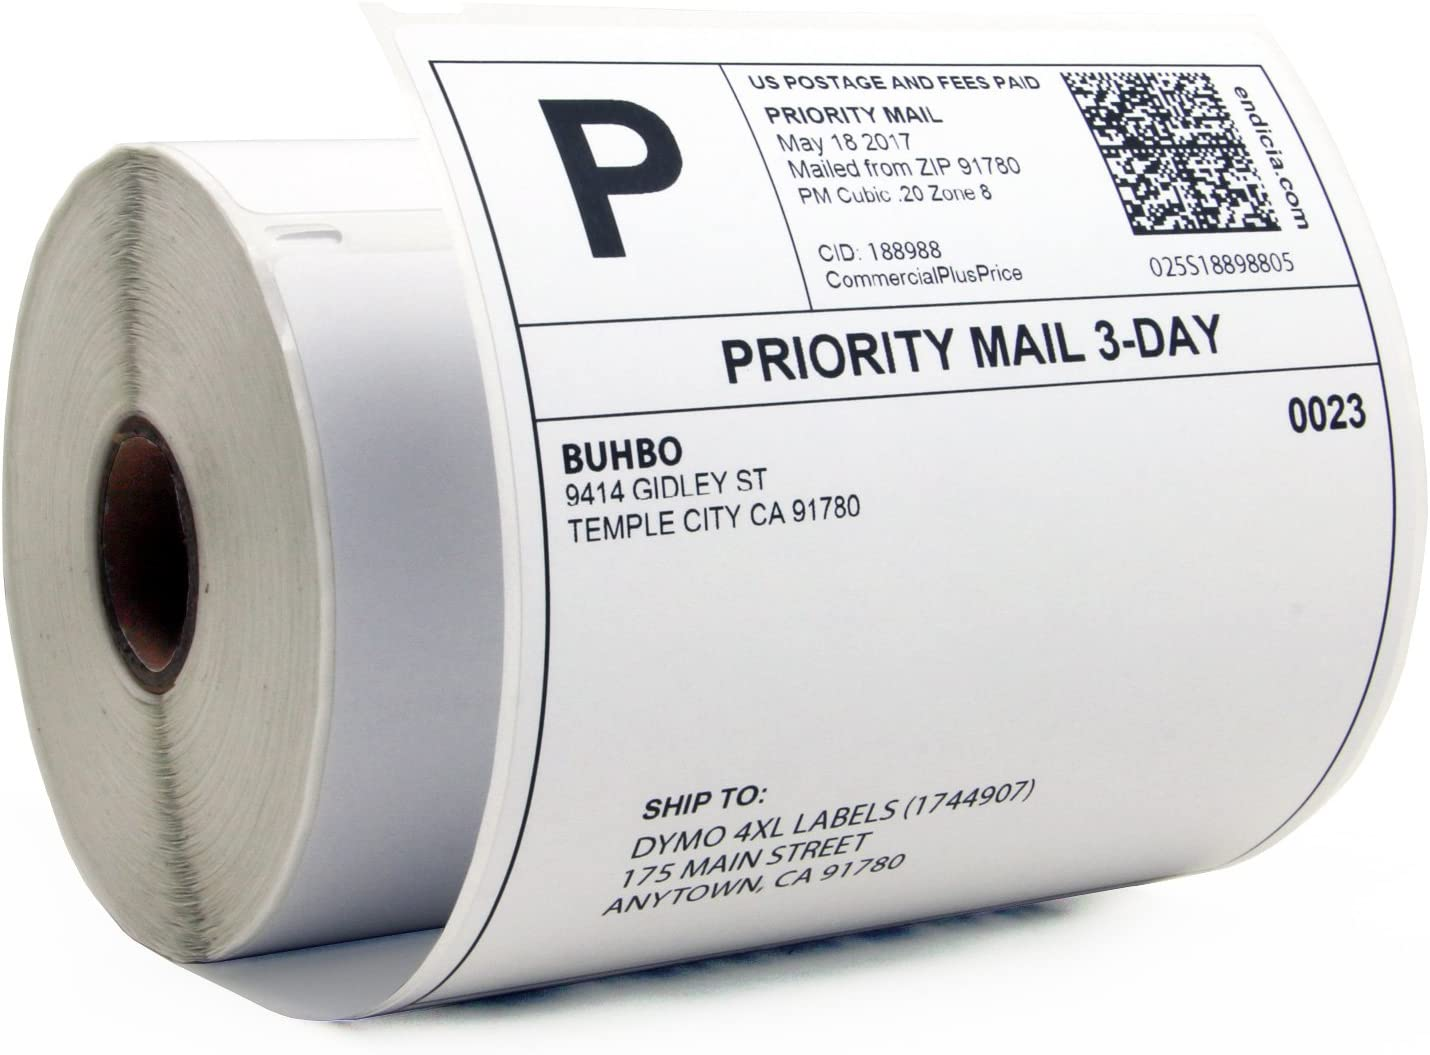 DYMO 4XL /& Zebra Desktop Printers Compatible with Rollo Compatible DYMO 1744907 Removable /& Perforated 4 x 6 1 Rolls//220 Labels Shipping Labels BETCKEY